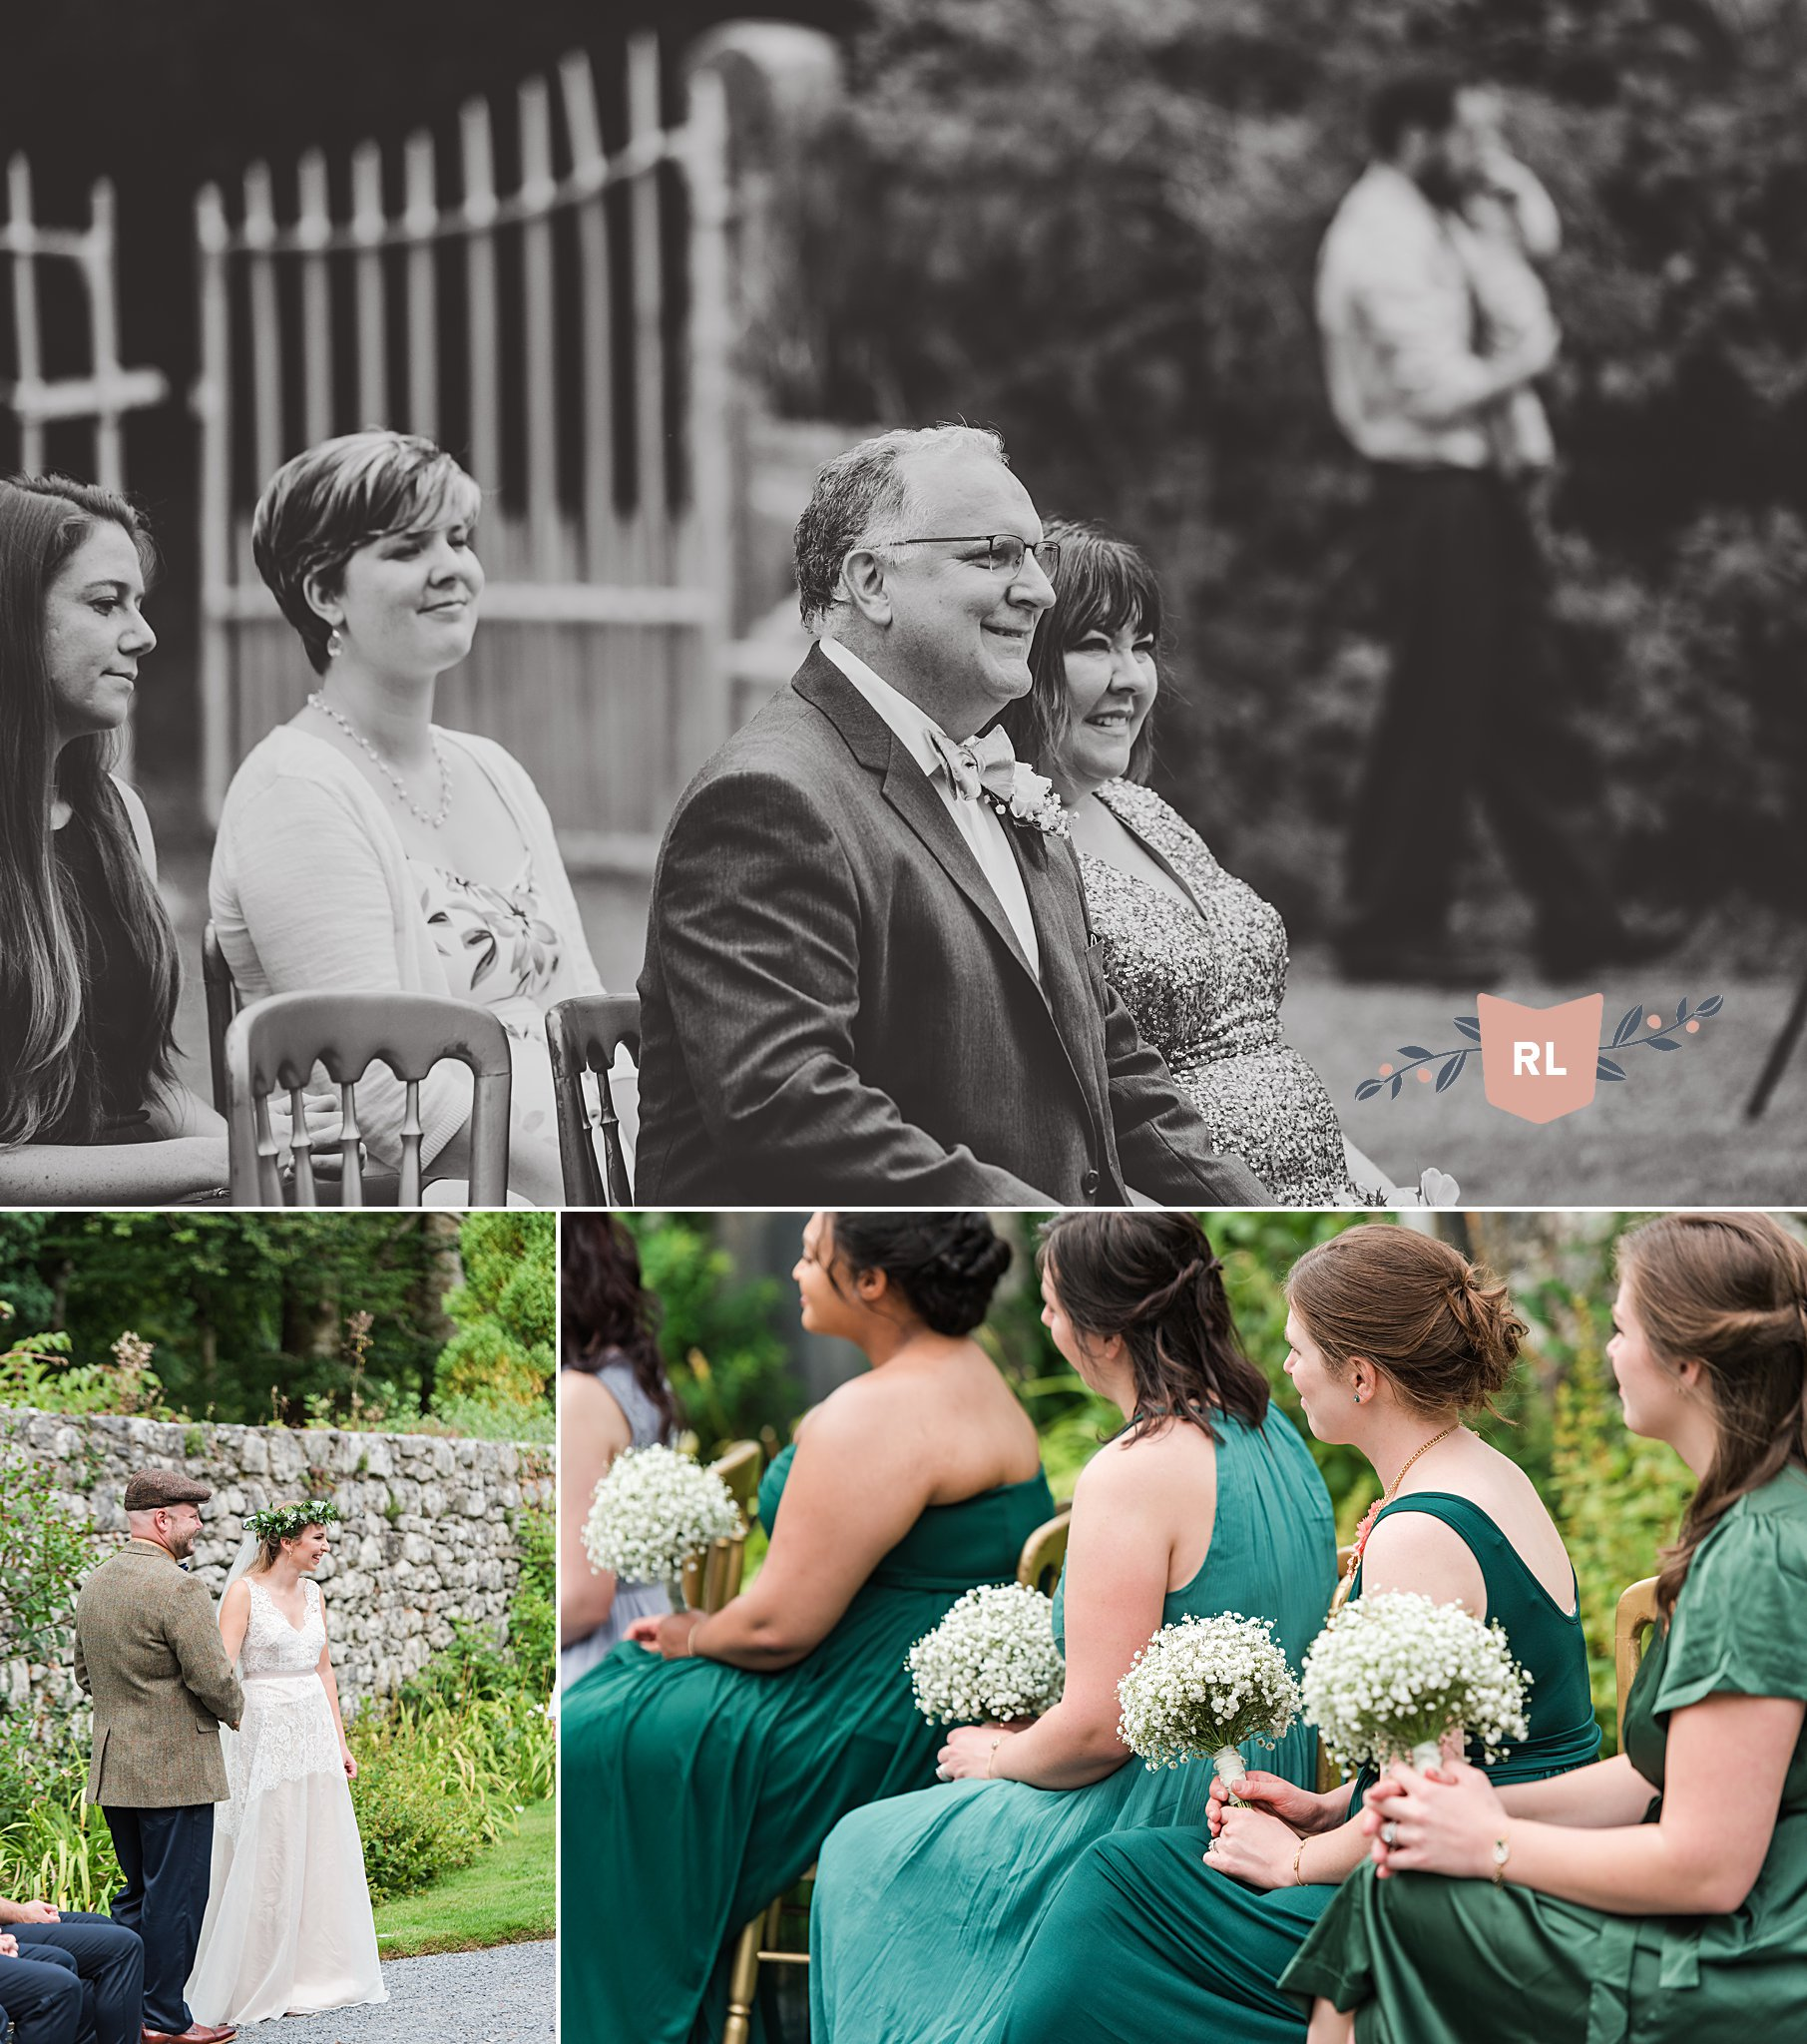 RossCastleWedding_Ireland_1021.jpg